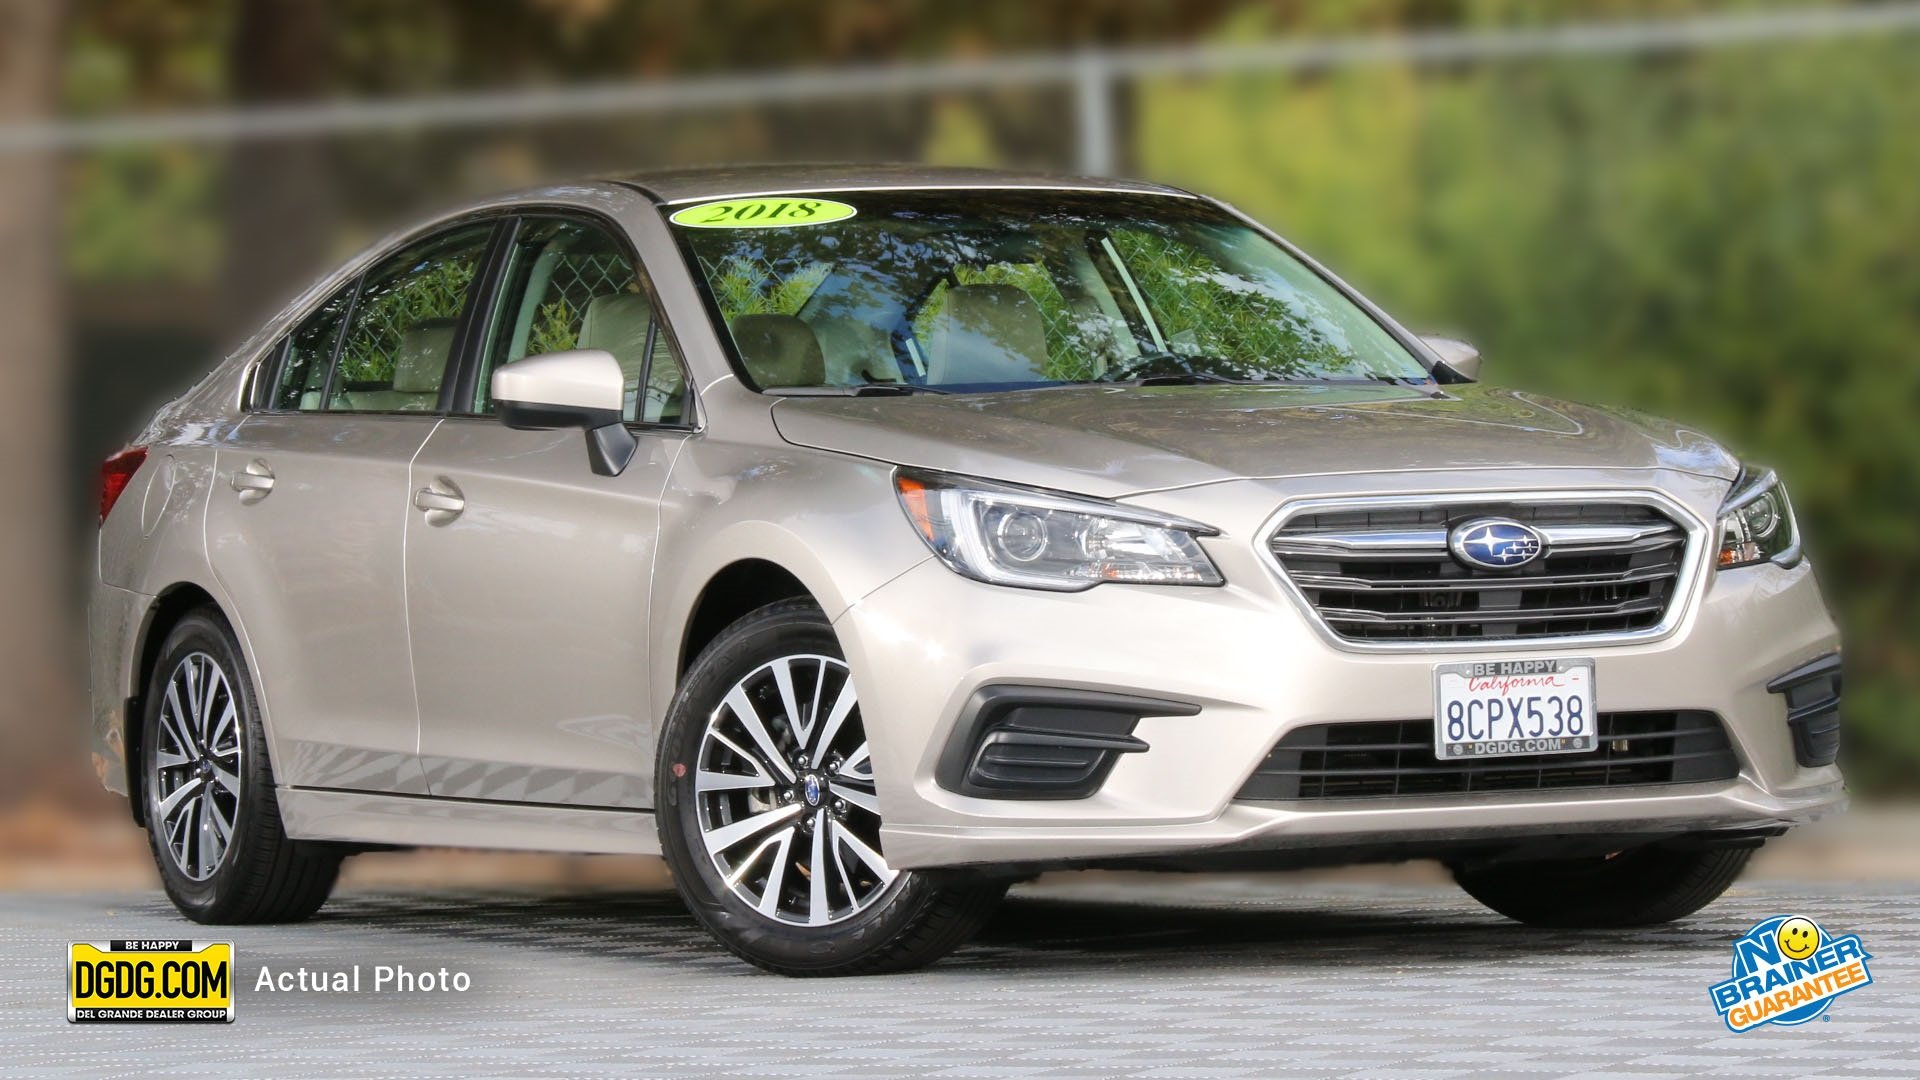 Subaru Legacy: SUBARU advanced frontal airbag system